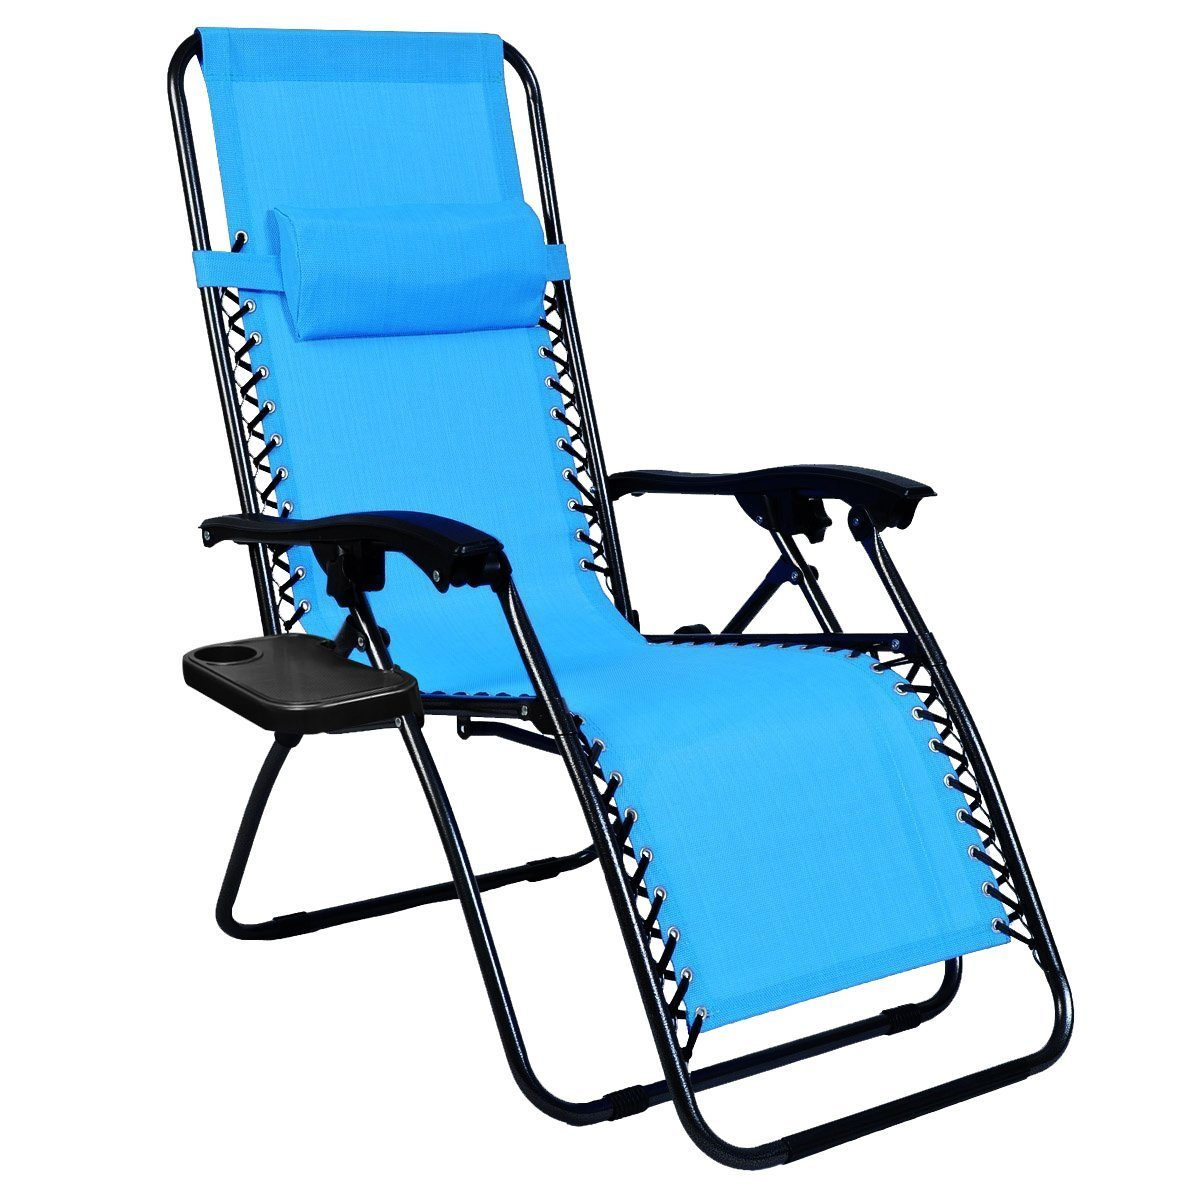 Get Quotations · Odaof Zero Gravity Recliner Lounge Chair with Cup Holder Light Blue  sc 1 th 225 & Cheap Diy Zero Gravity Chair find Diy Zero Gravity Chair deals on ...